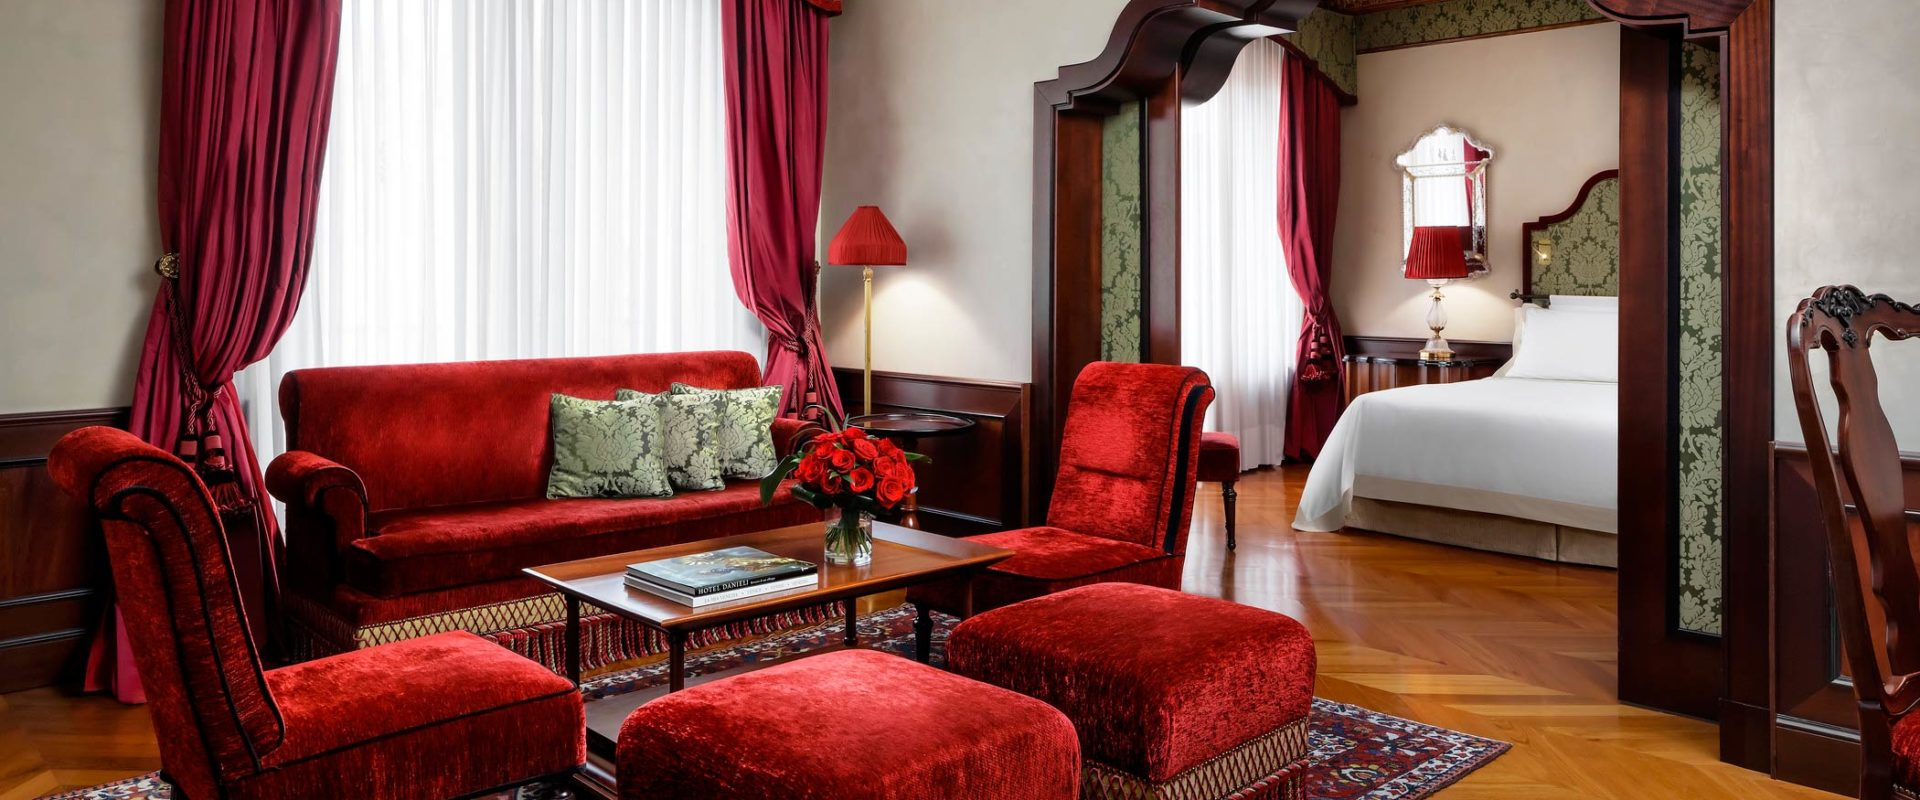 Hotel-Danieli-Venice-Executive-Suite-Salon